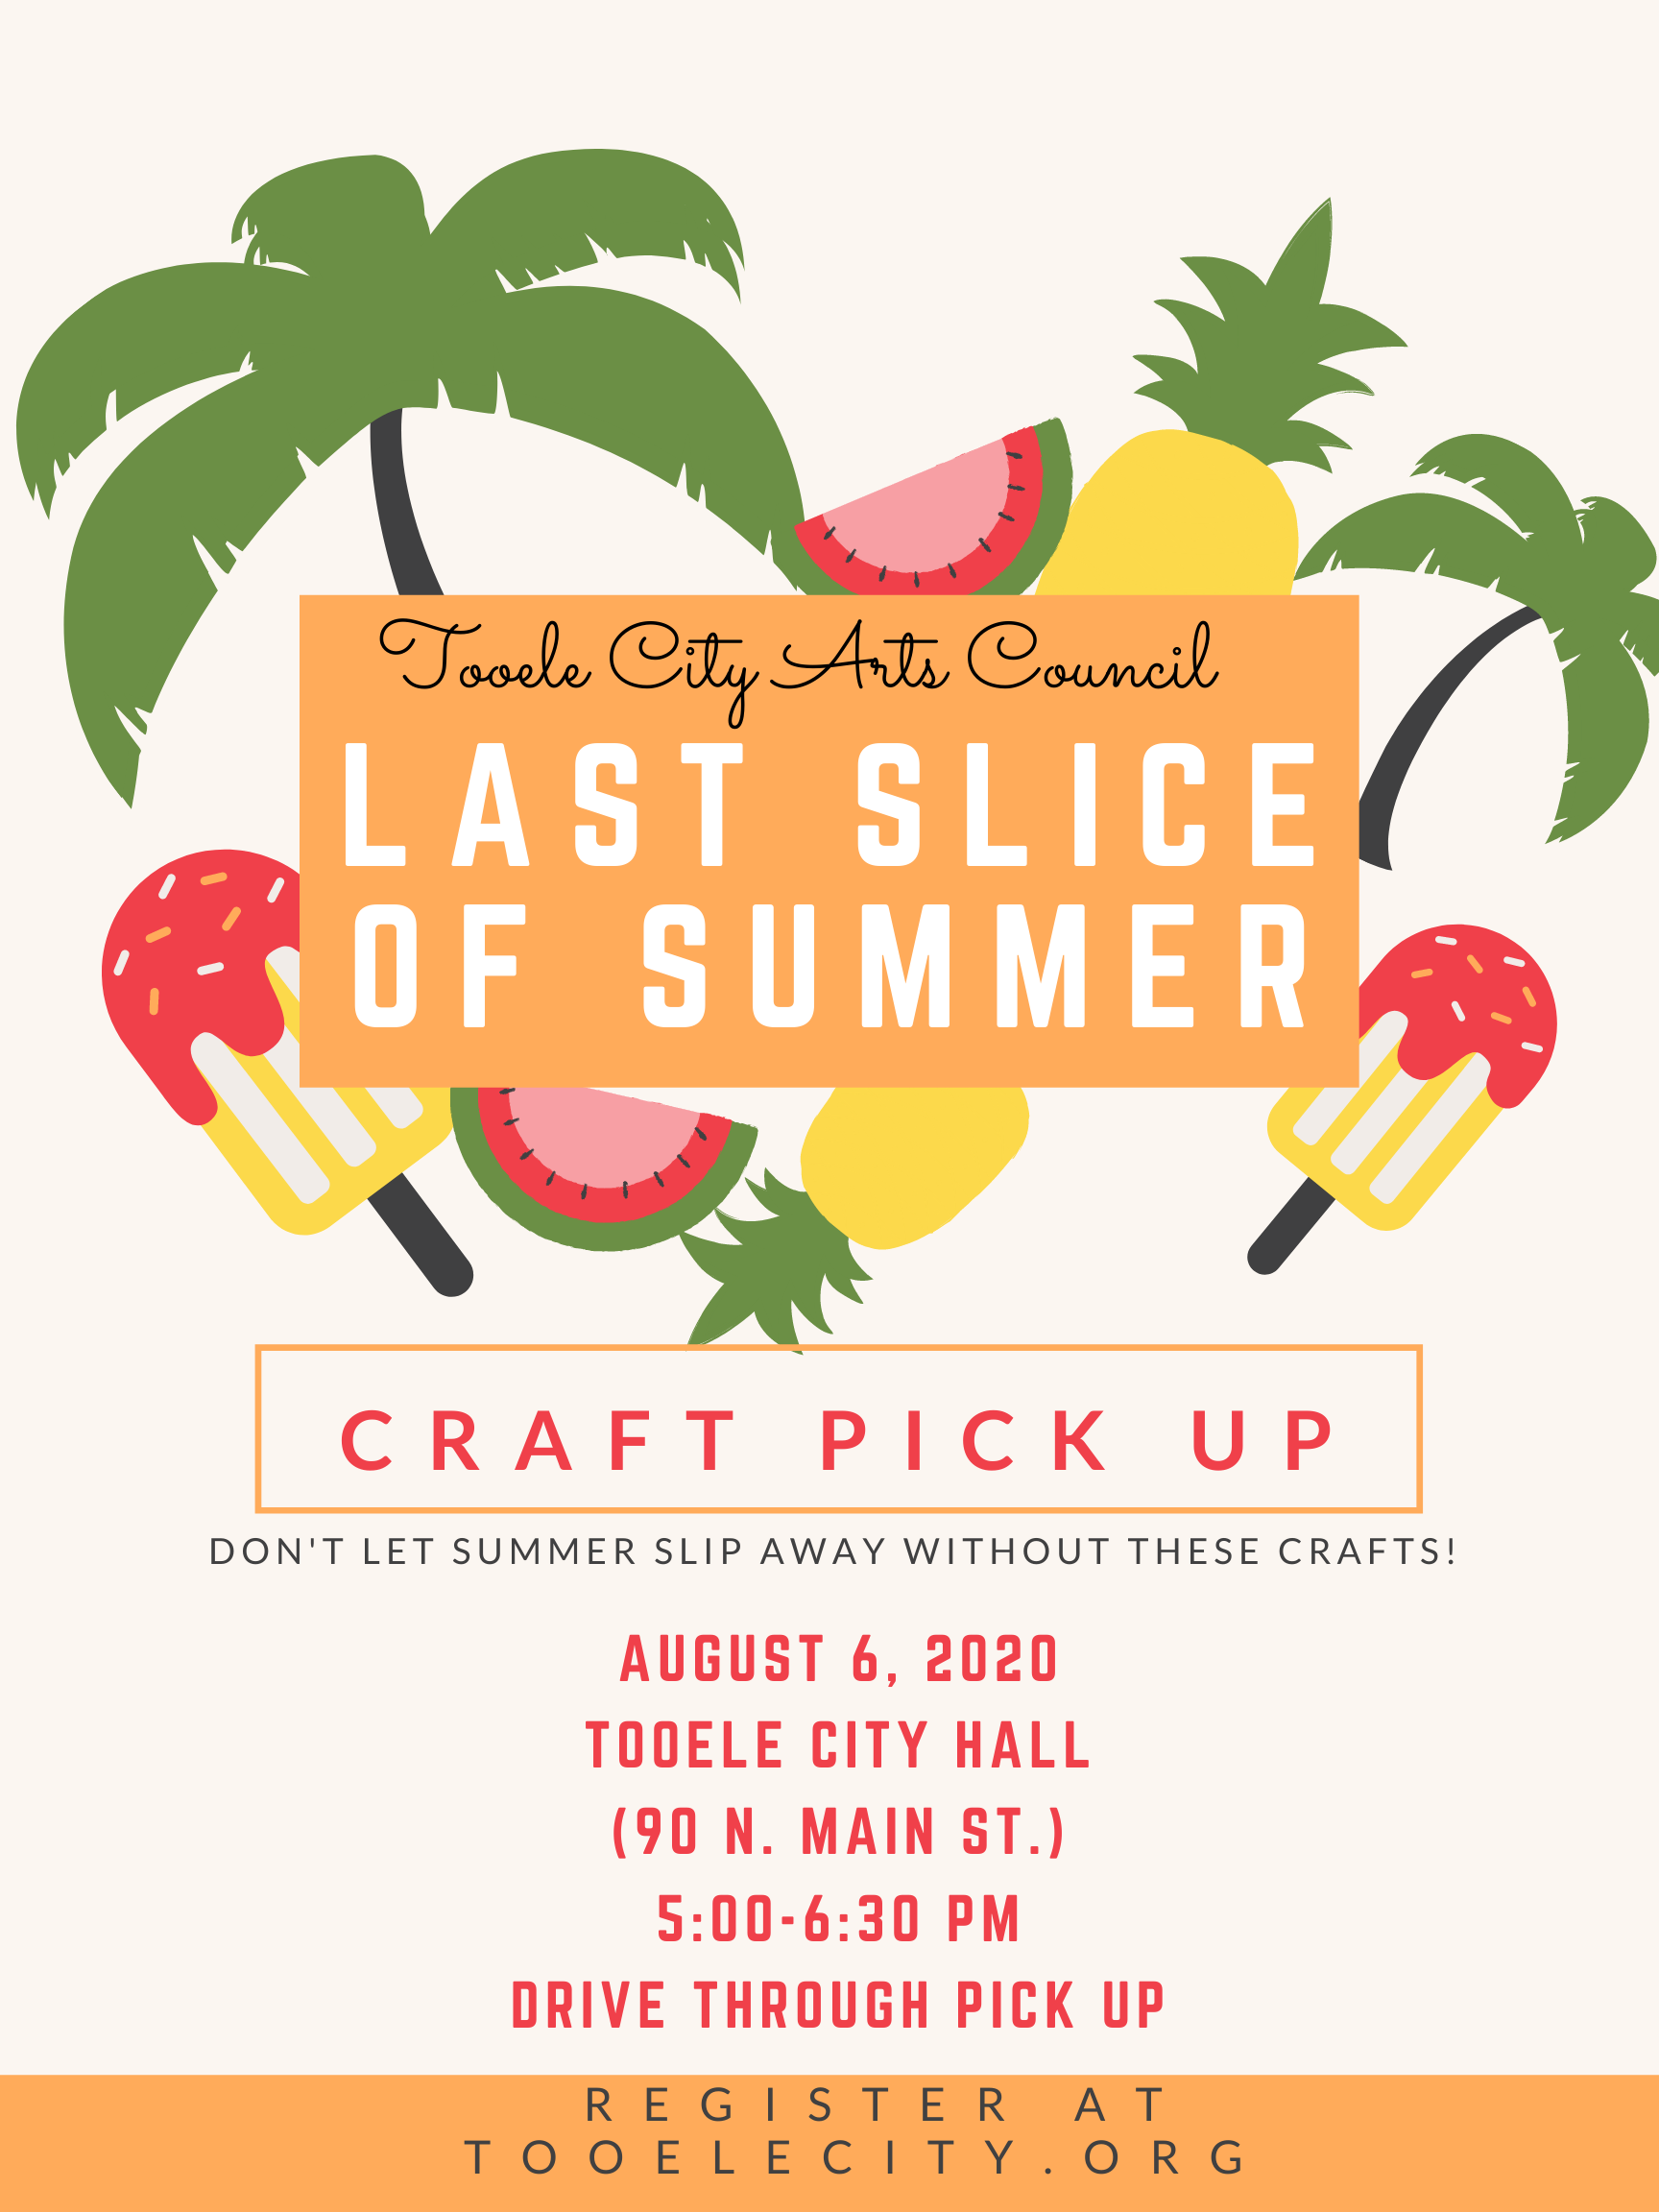 Last Slice of Summer Craft Pick Up